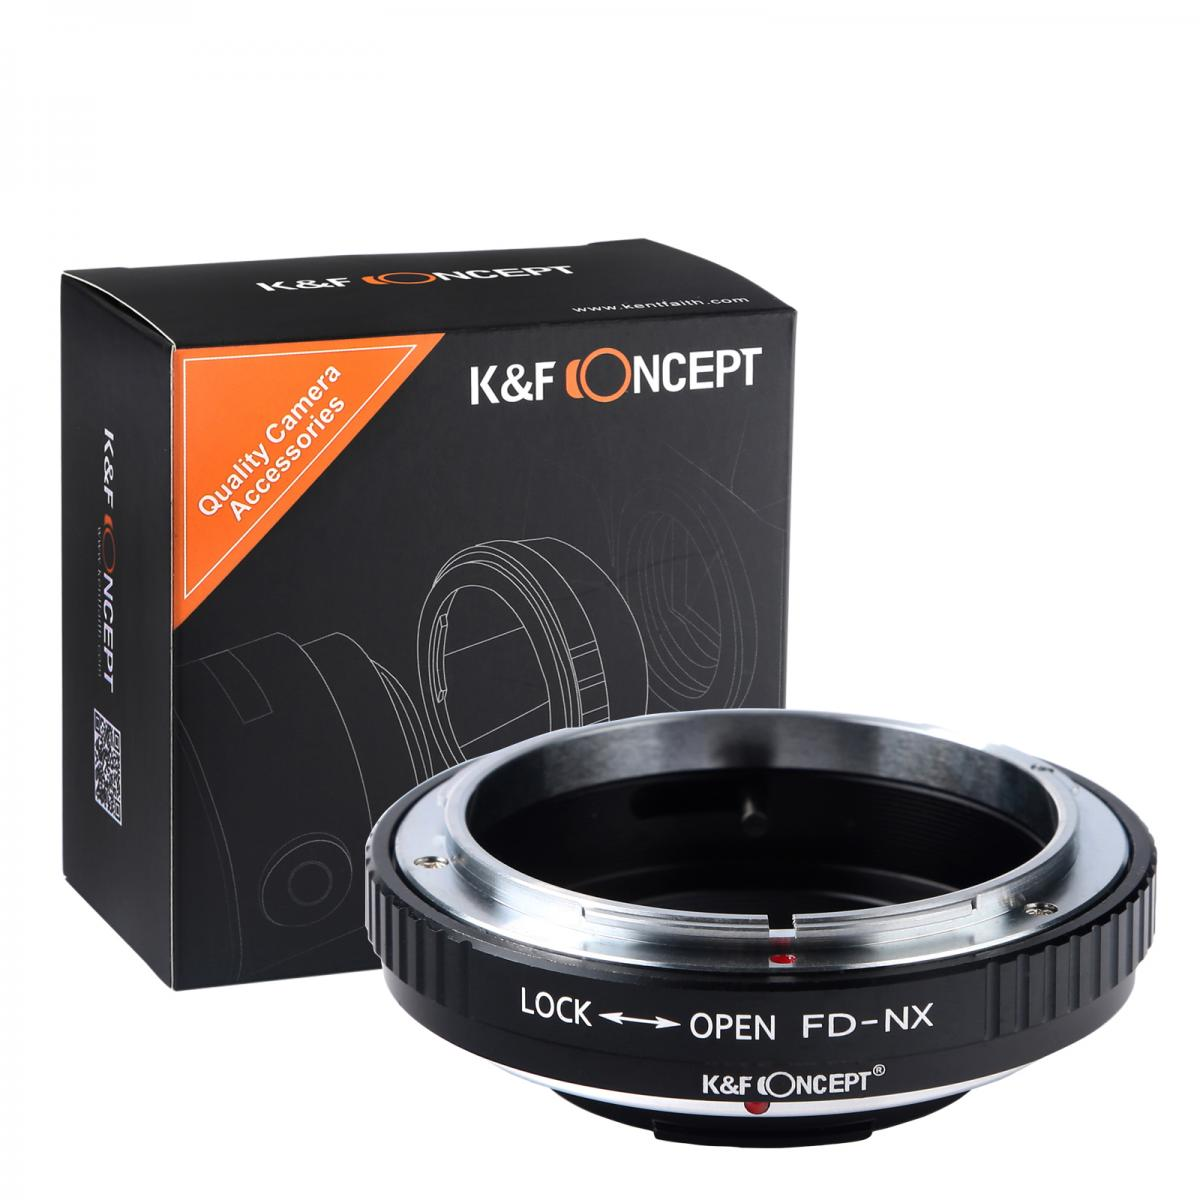 K&F M13251 Canon FD Lenses to Samsung NX Lens Mount Adapter